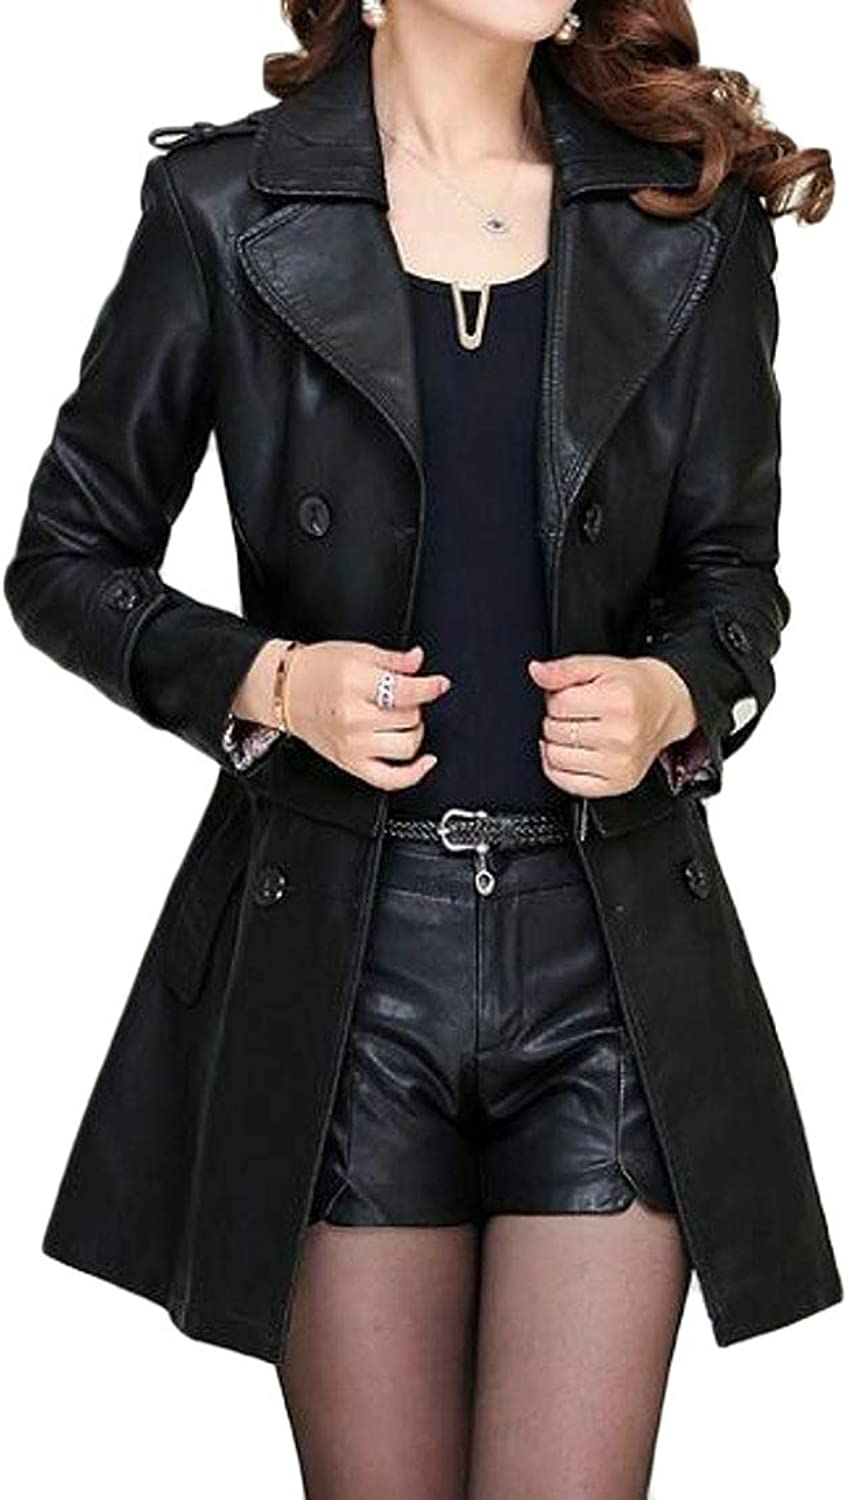 Jofemuho Women Mid Length Belted Classic Double Breasted Pu Leather Jacket Trench Coat